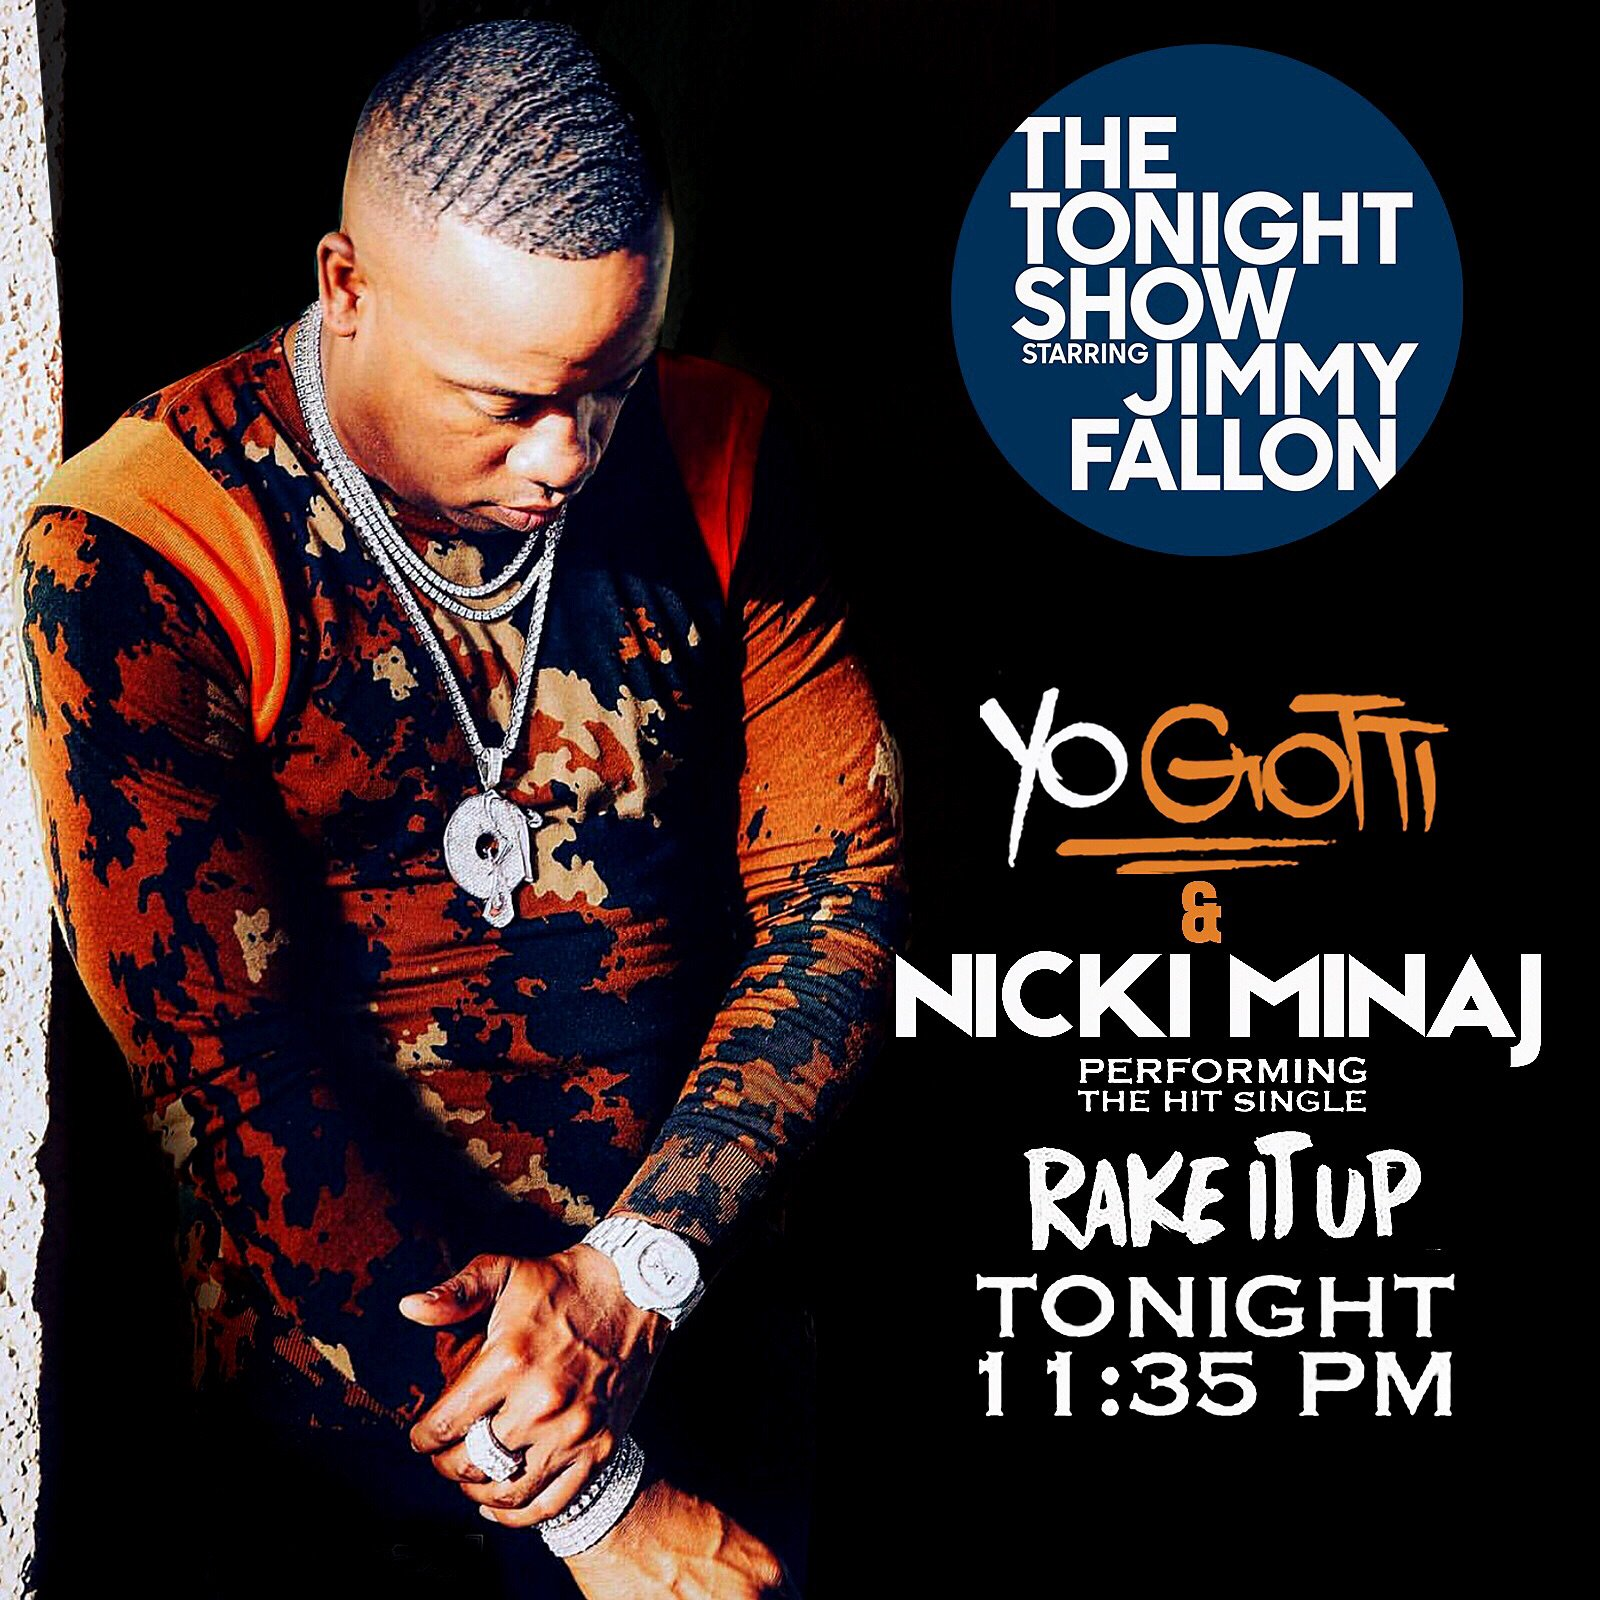 WATCH ME ON @JimmyFallon Tonight / @Nickiminaj ������ https://t.co/Fn0lBMsBKF